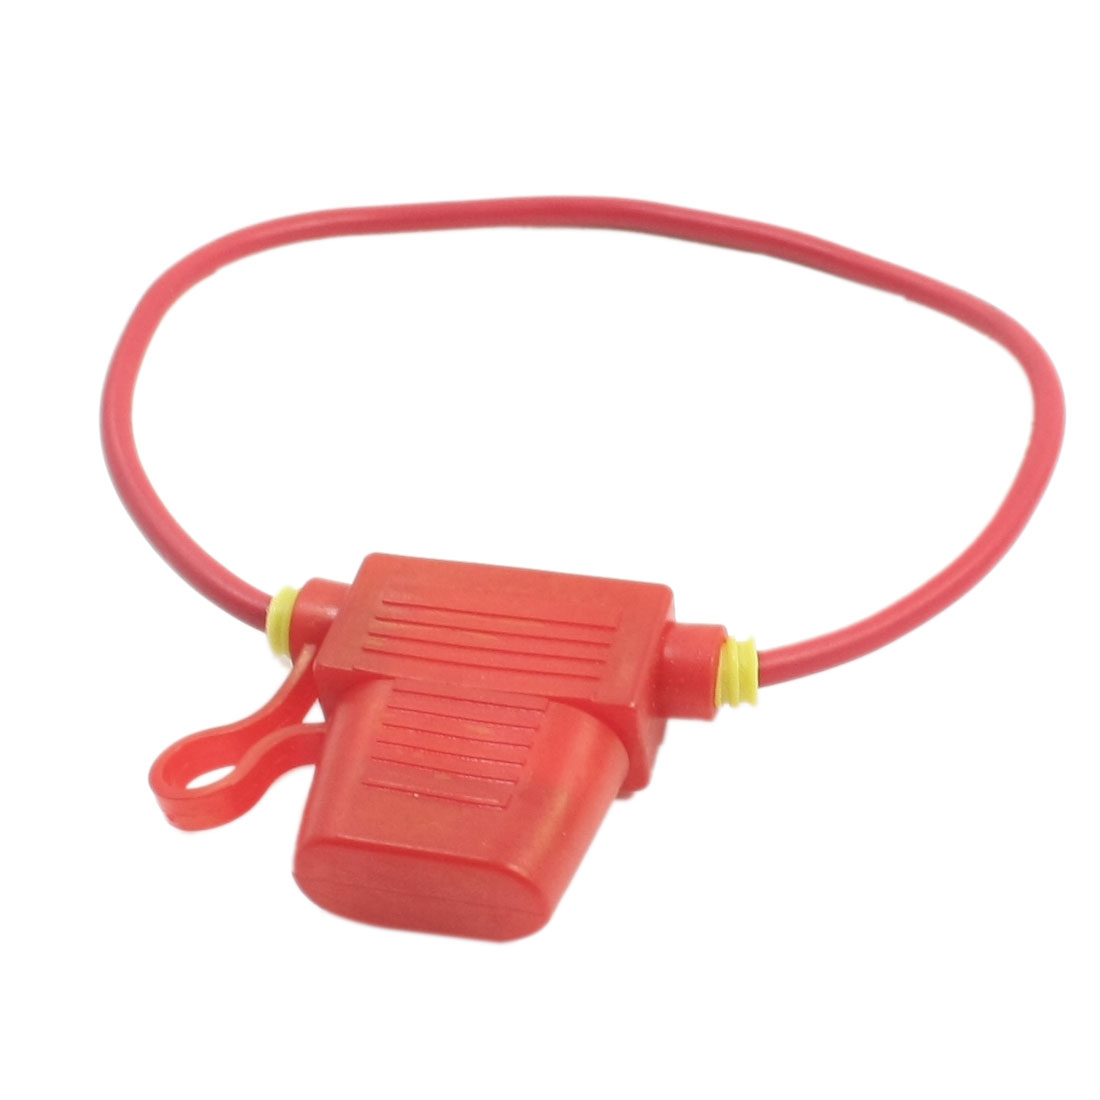 Red Vehicles Car Rubber Blade Fuse Holder Container + 32V 10A Fuse